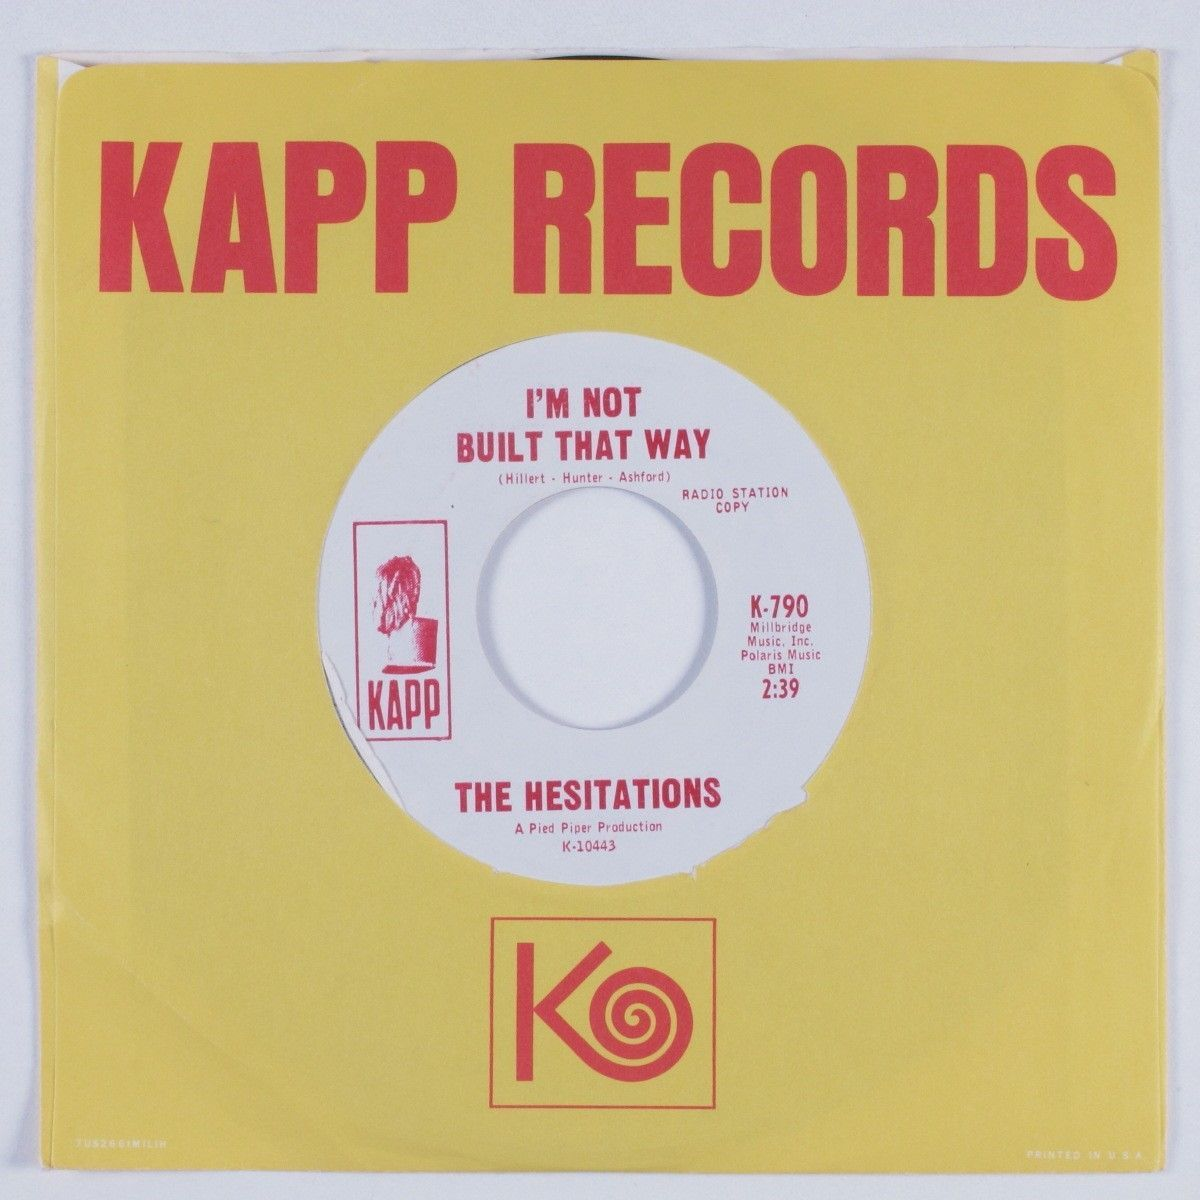 Northern Soul 45 HESITATIONS I'm Not Built That Way KAPP promo HEAR  https://t.co/qqVkhCER18 https://t.co/H8XVY7R5LM